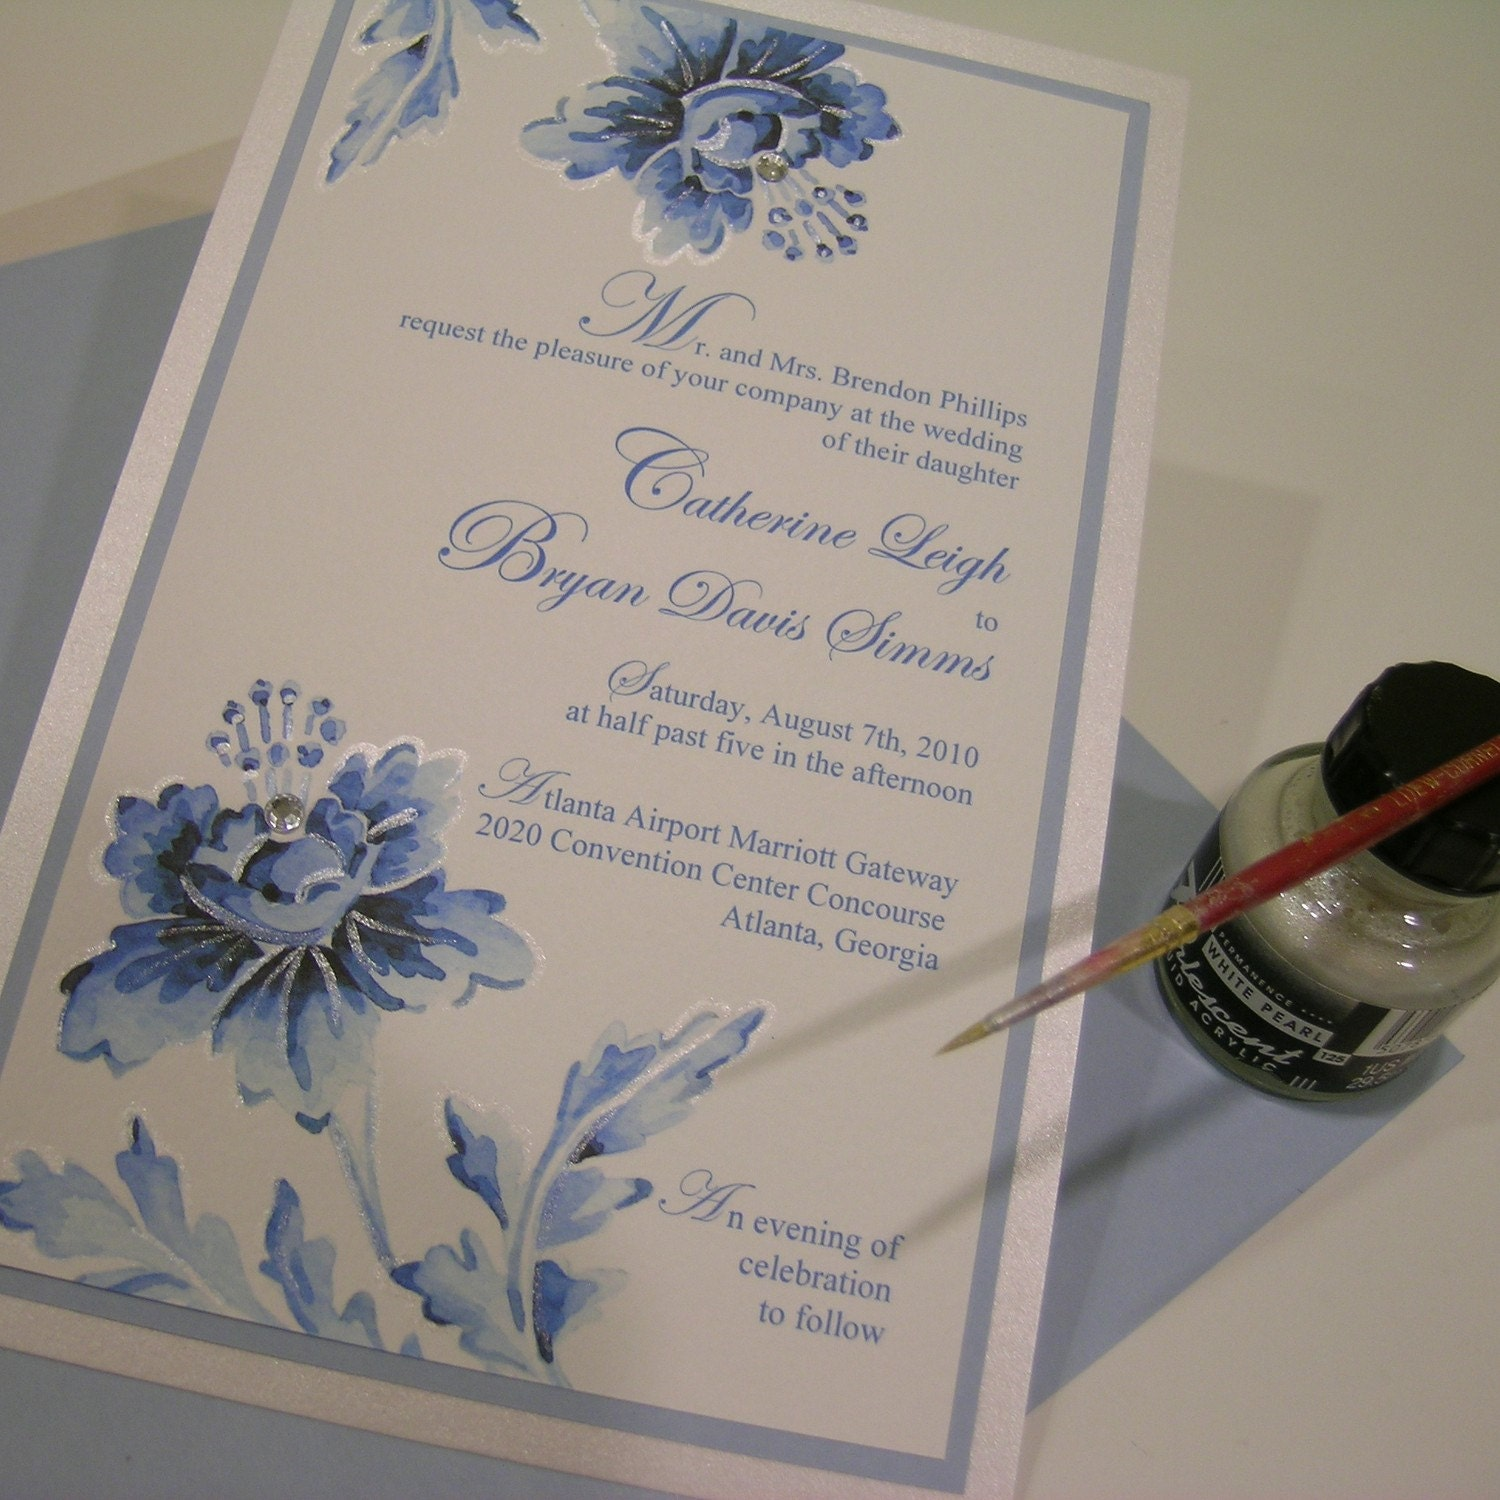 Once in a blue moon - Wedding invitation sample